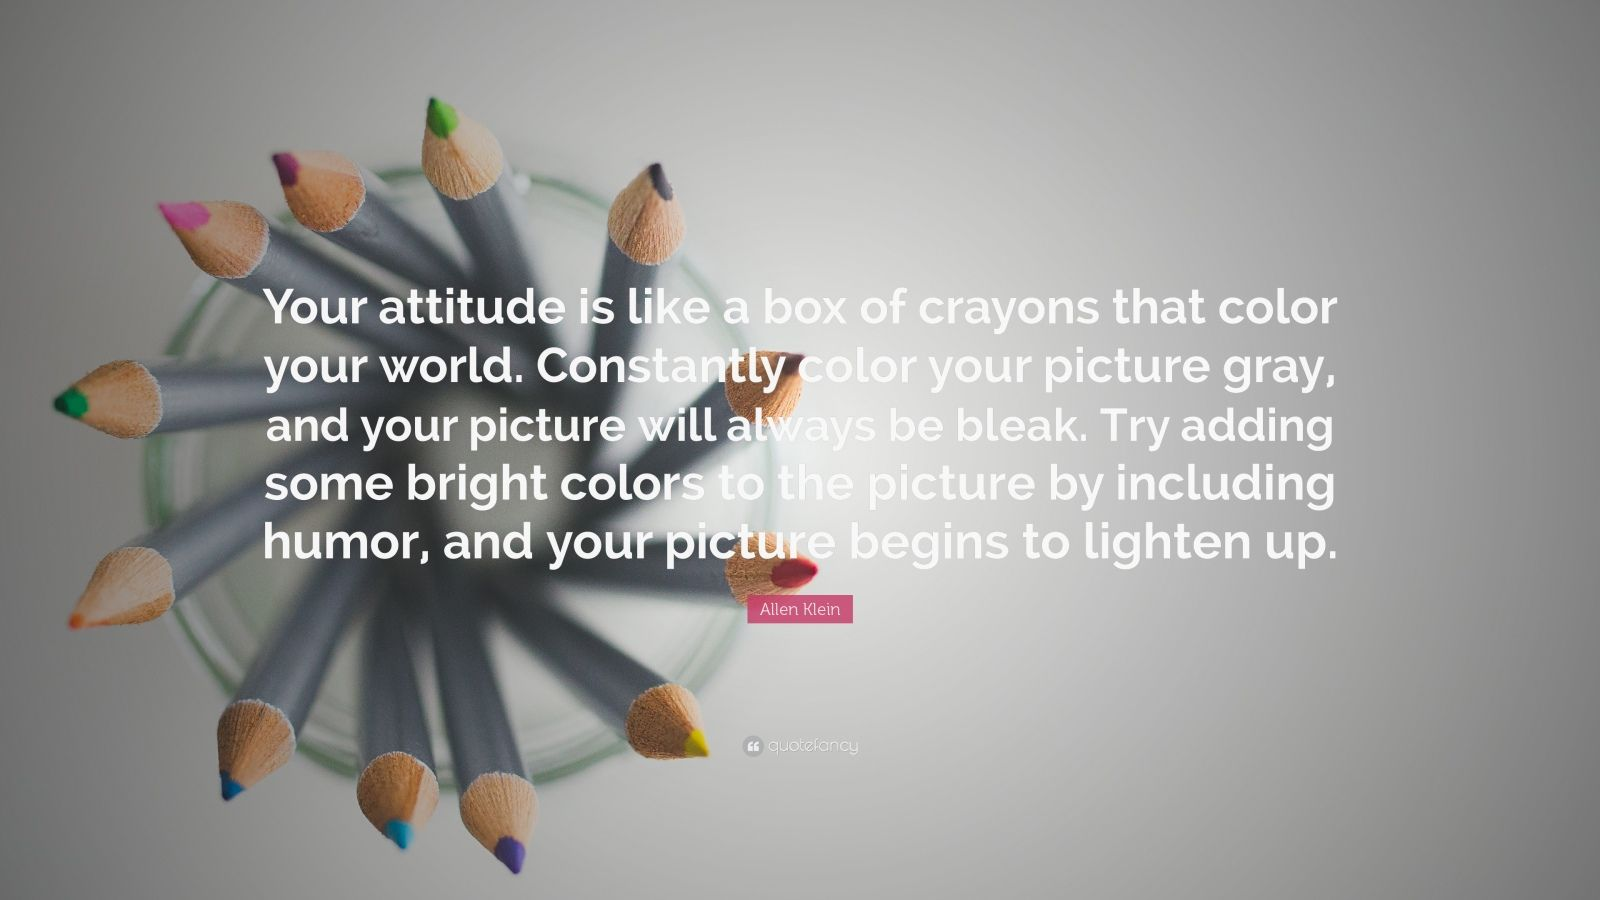 Steve Jobs Wallpaper Quotes Allen Klein Quote Your Attitude Is Like A Box Of Crayons